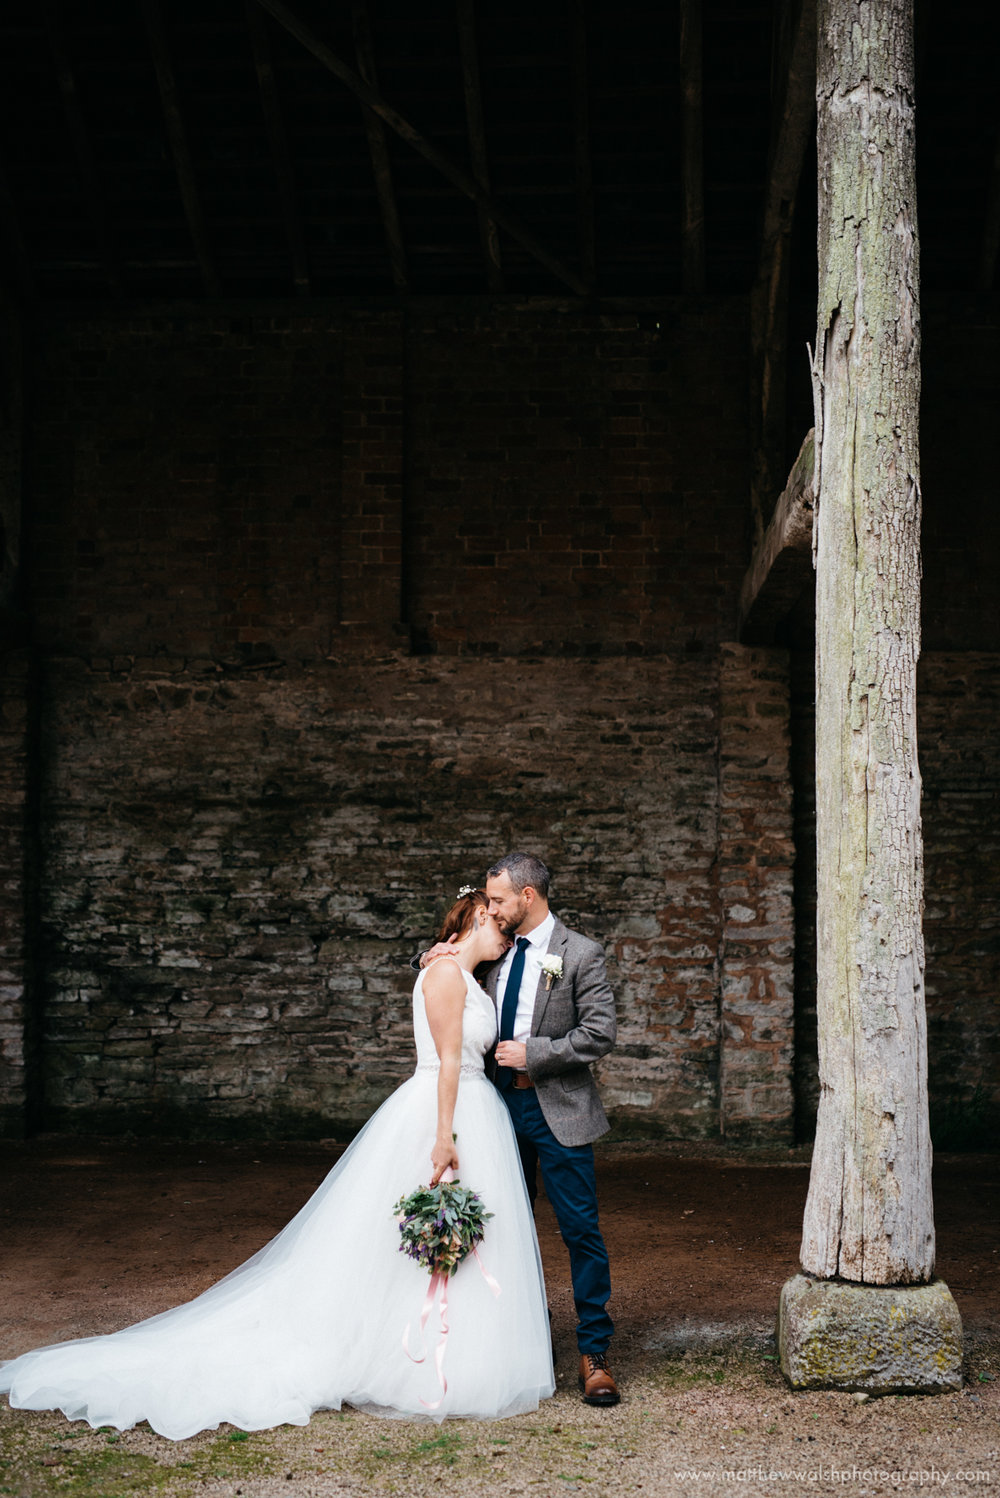 The happy couple have a hug under the shelter of a barn at the venue